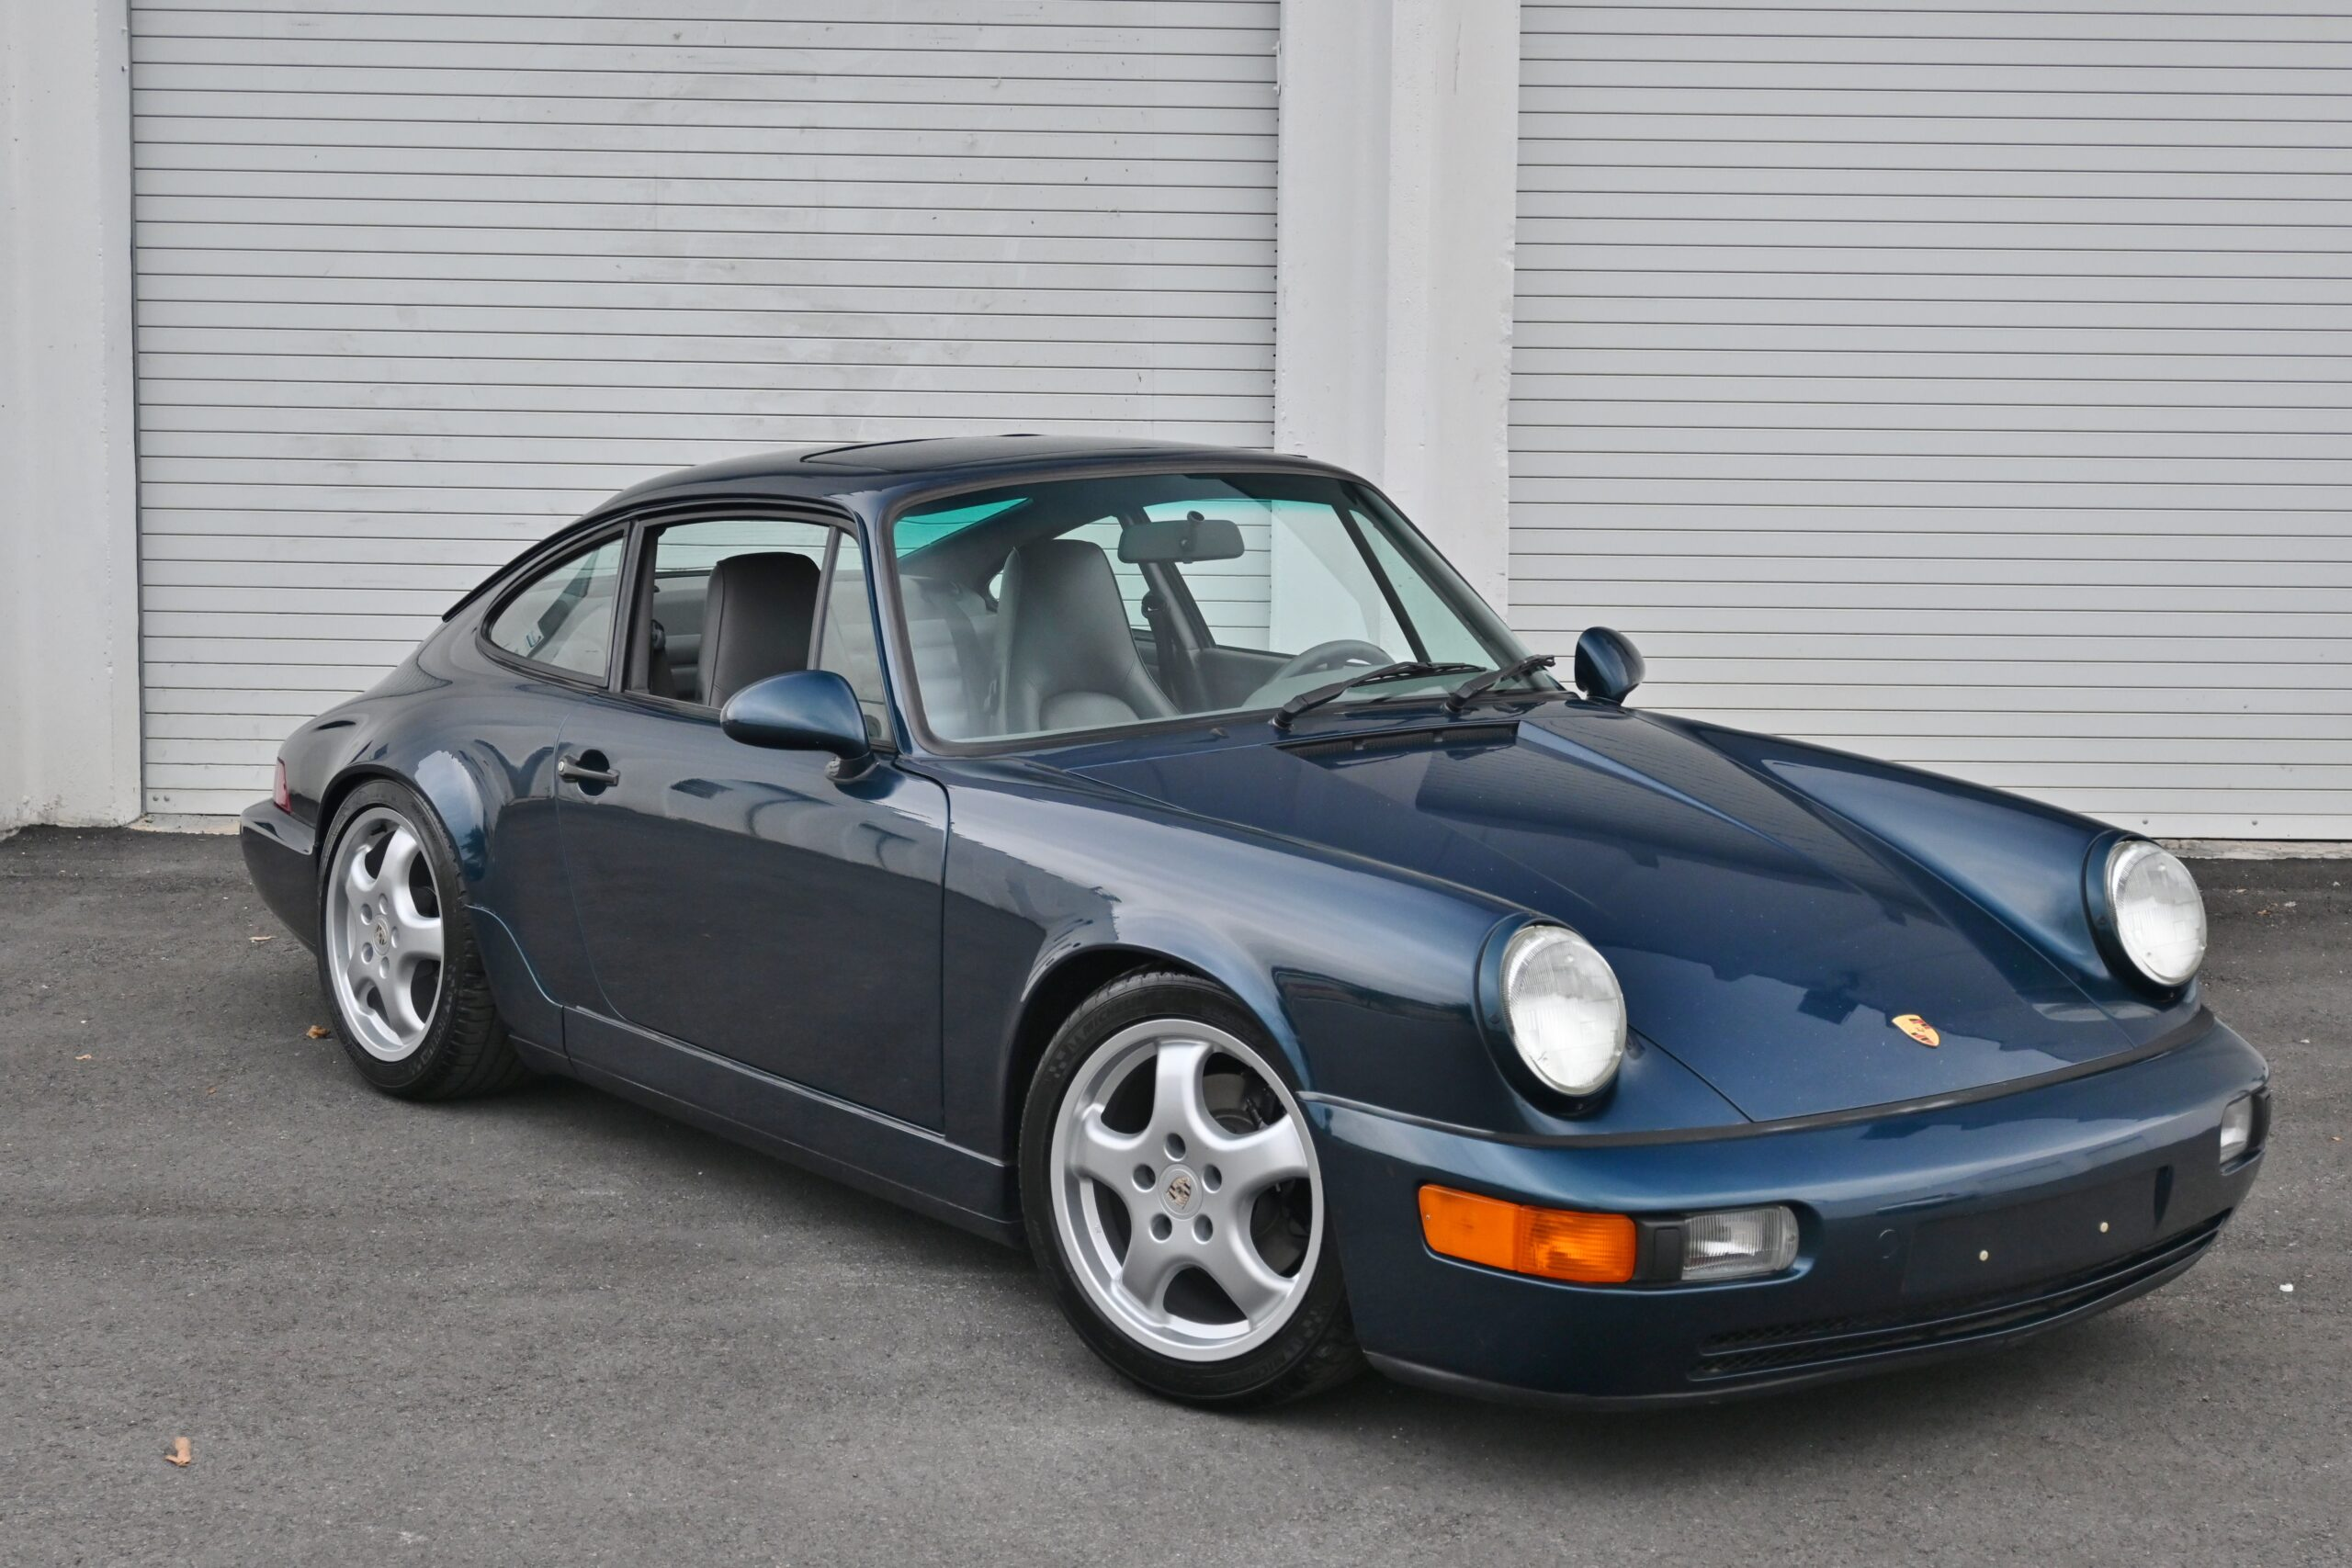 1993 Porsche 911 964 Carrera 2 Rare 1 of 505 US Coupes/ Amazon Green /5 Speed Manual /Limited Slip Differential